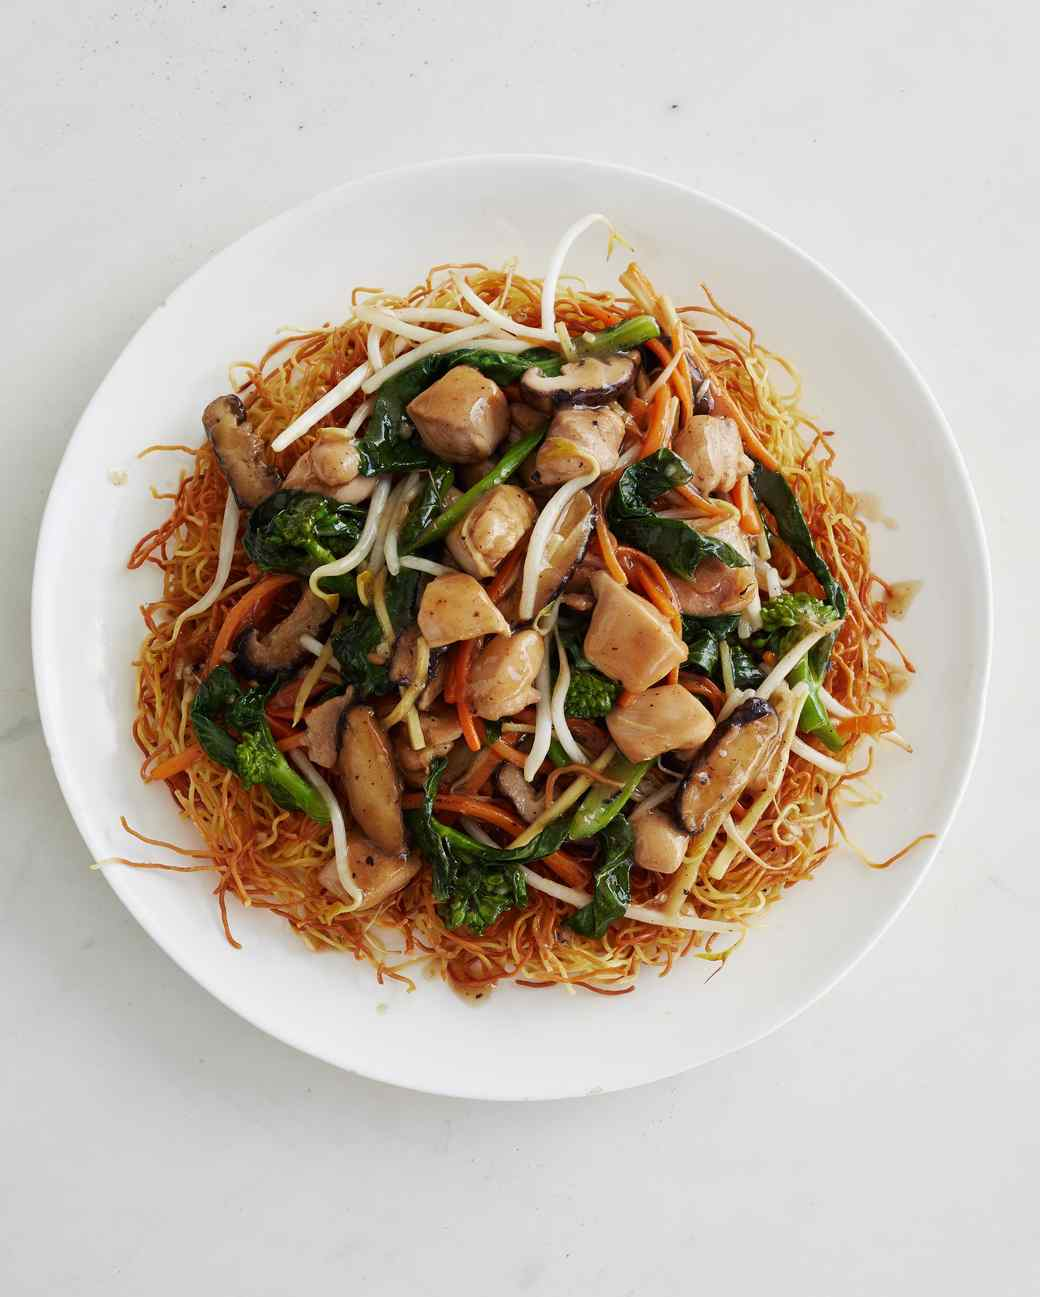 chow mein dish